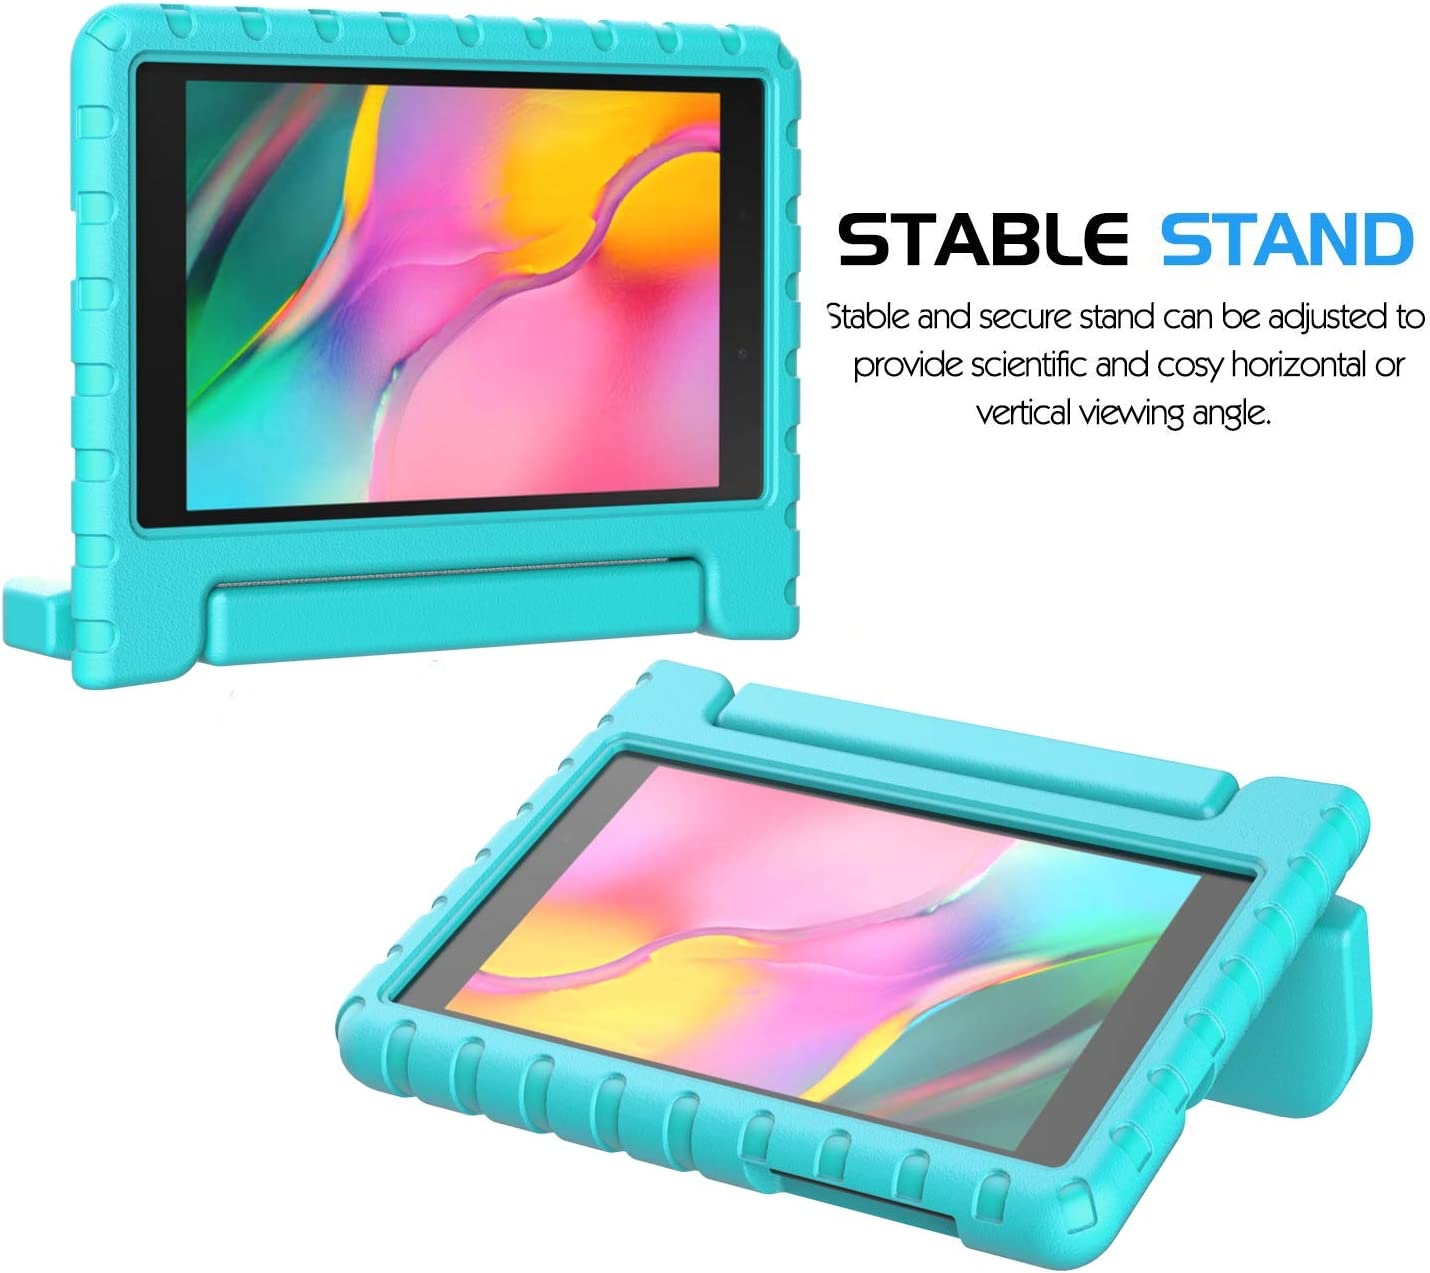 BMOUO Kids Case for Samsung Galaxy Tab A 8.0 2019 SM-T290//T295 Galaxy Tab A 8.0 Case 2019 Rose Shockproof Light Weight Protective Handle Stand Case for Galaxy Tab A 8.0 Inch 2019 Without S Pen